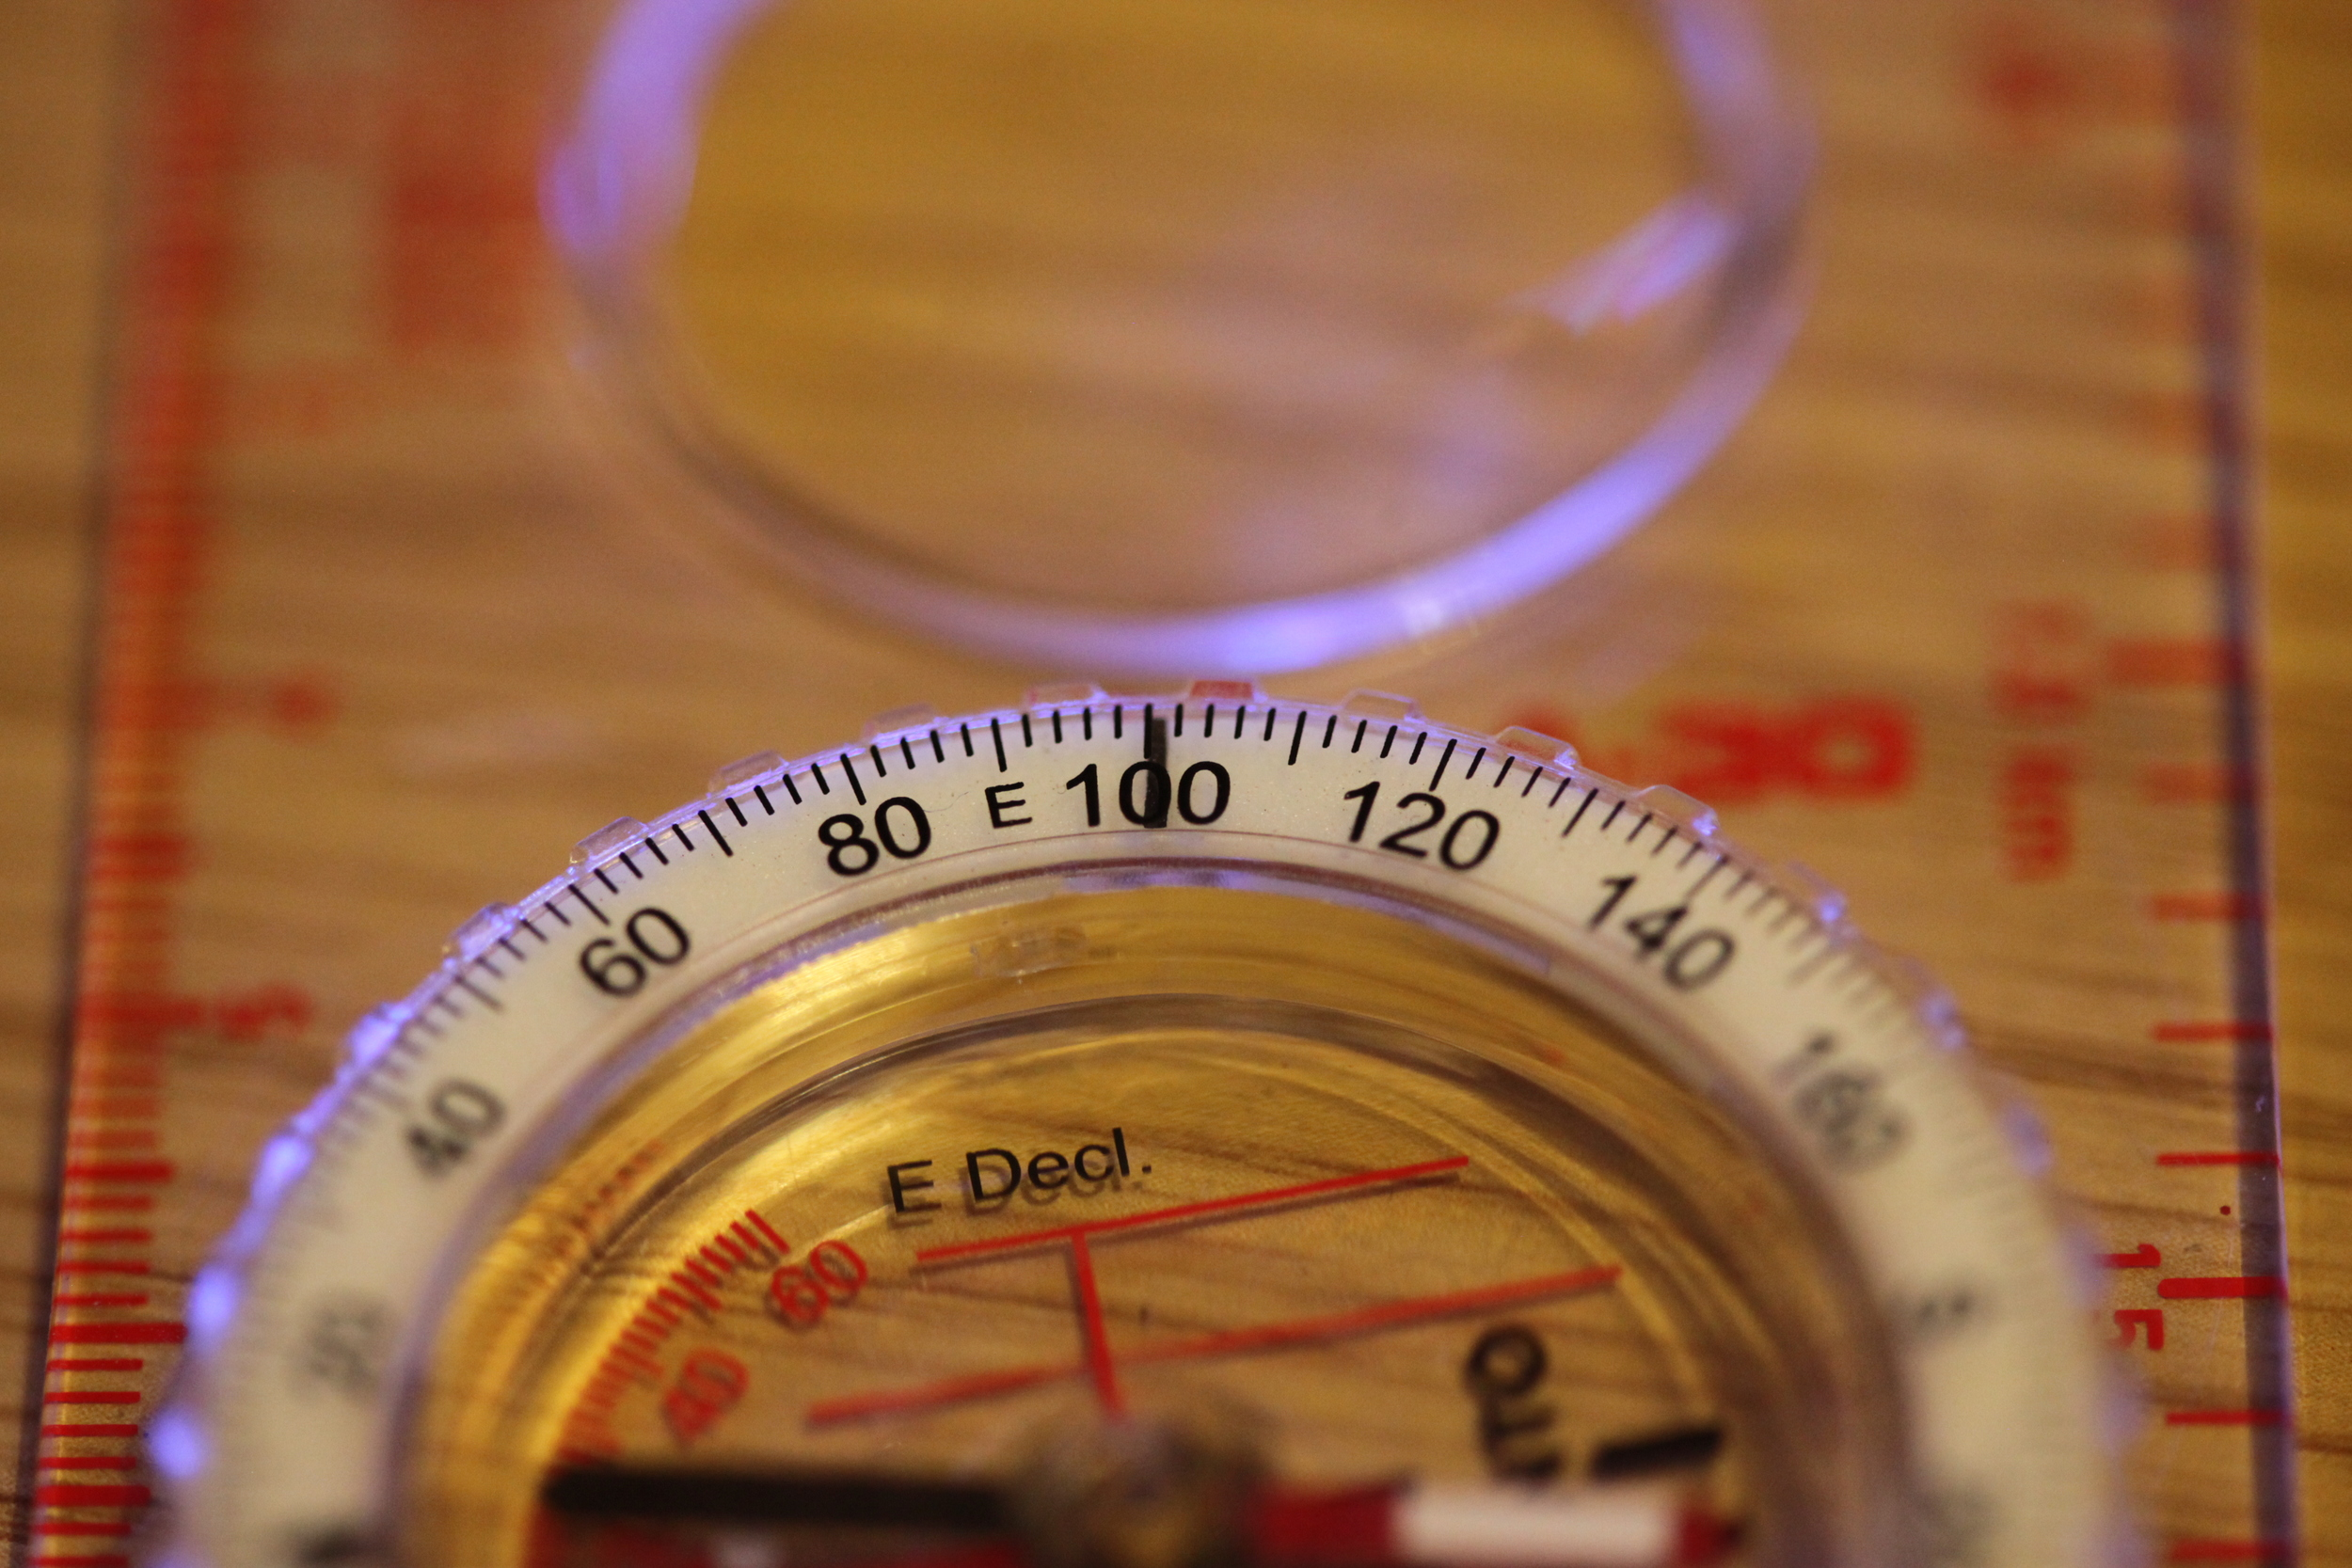 Turn the outer dial to line up on 101 degrees or as close as you an get it!